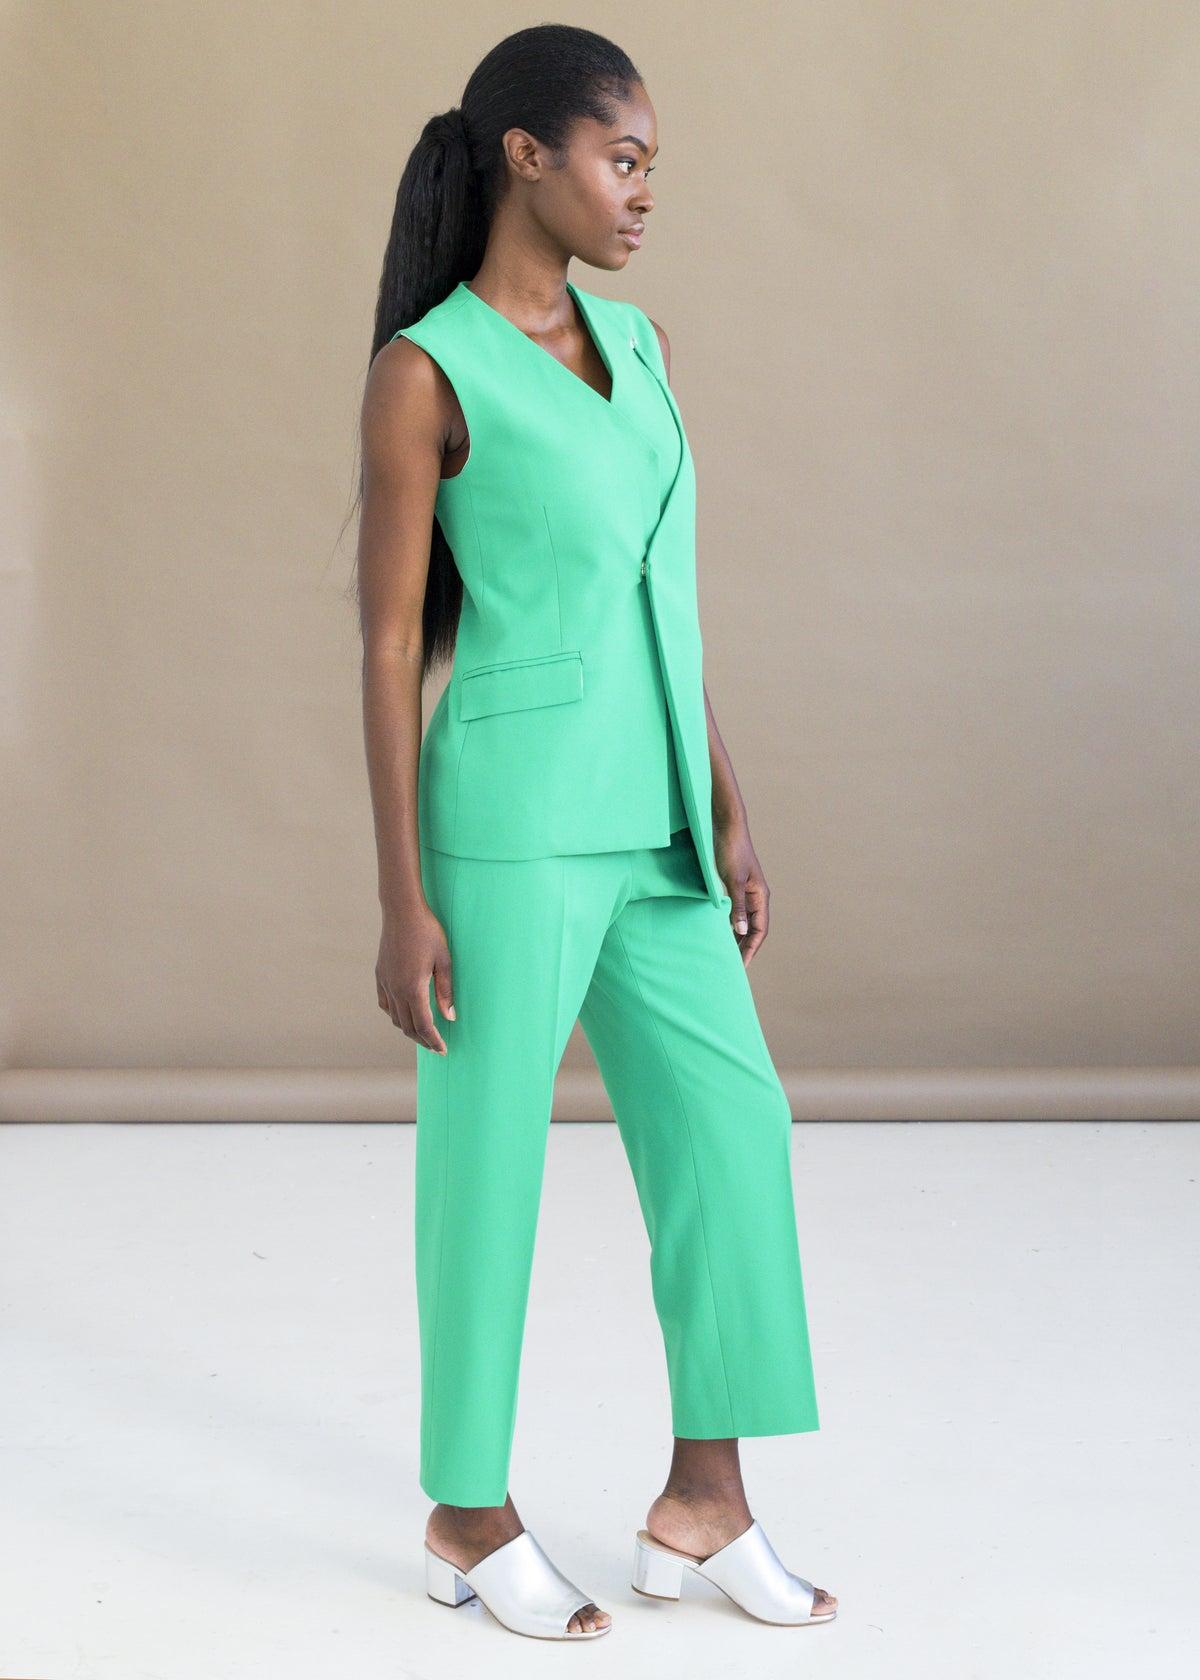 Shop the neon green tailored pants with pockets by MmusoMaxwell.